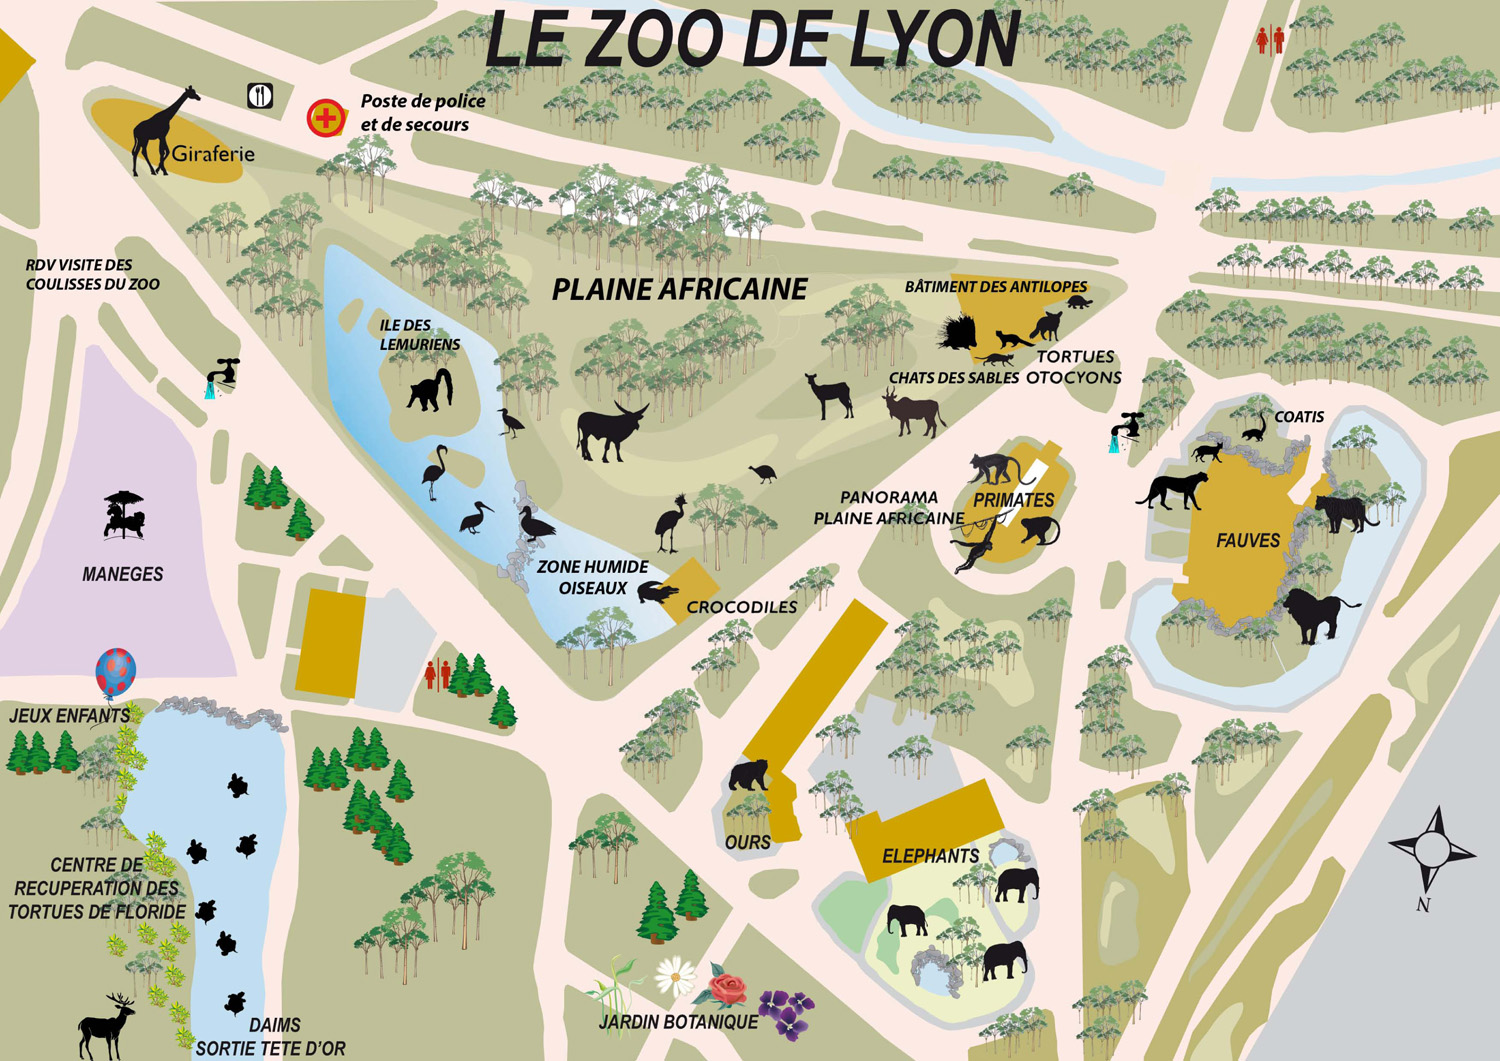 Map Of Zoos In France.Index Of Zoos Europe France Lyon Maps